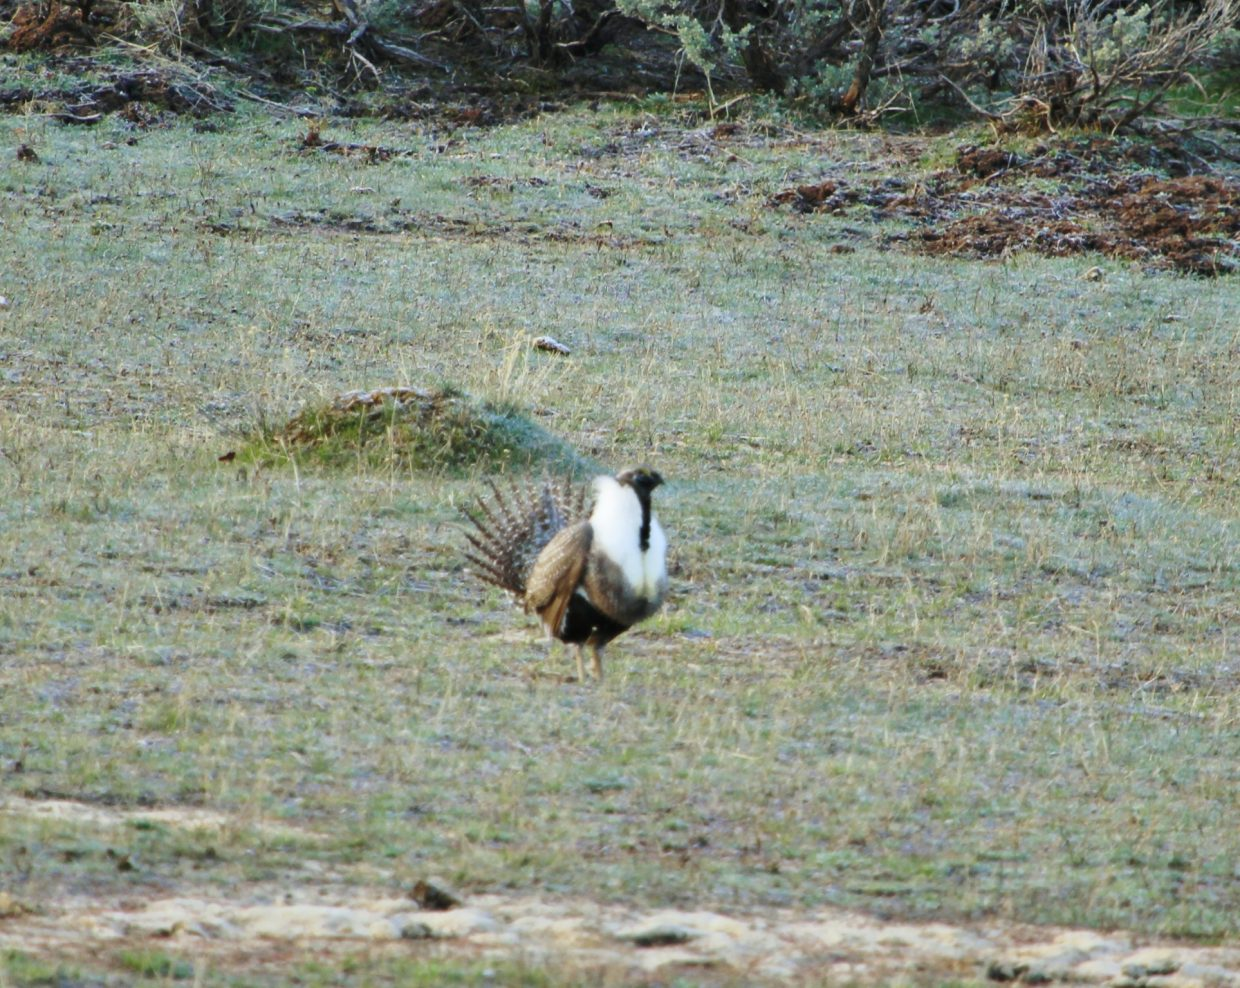 A greater sage grouse out running around enjoying the springtime weather. Submitted by Joe Pierce.